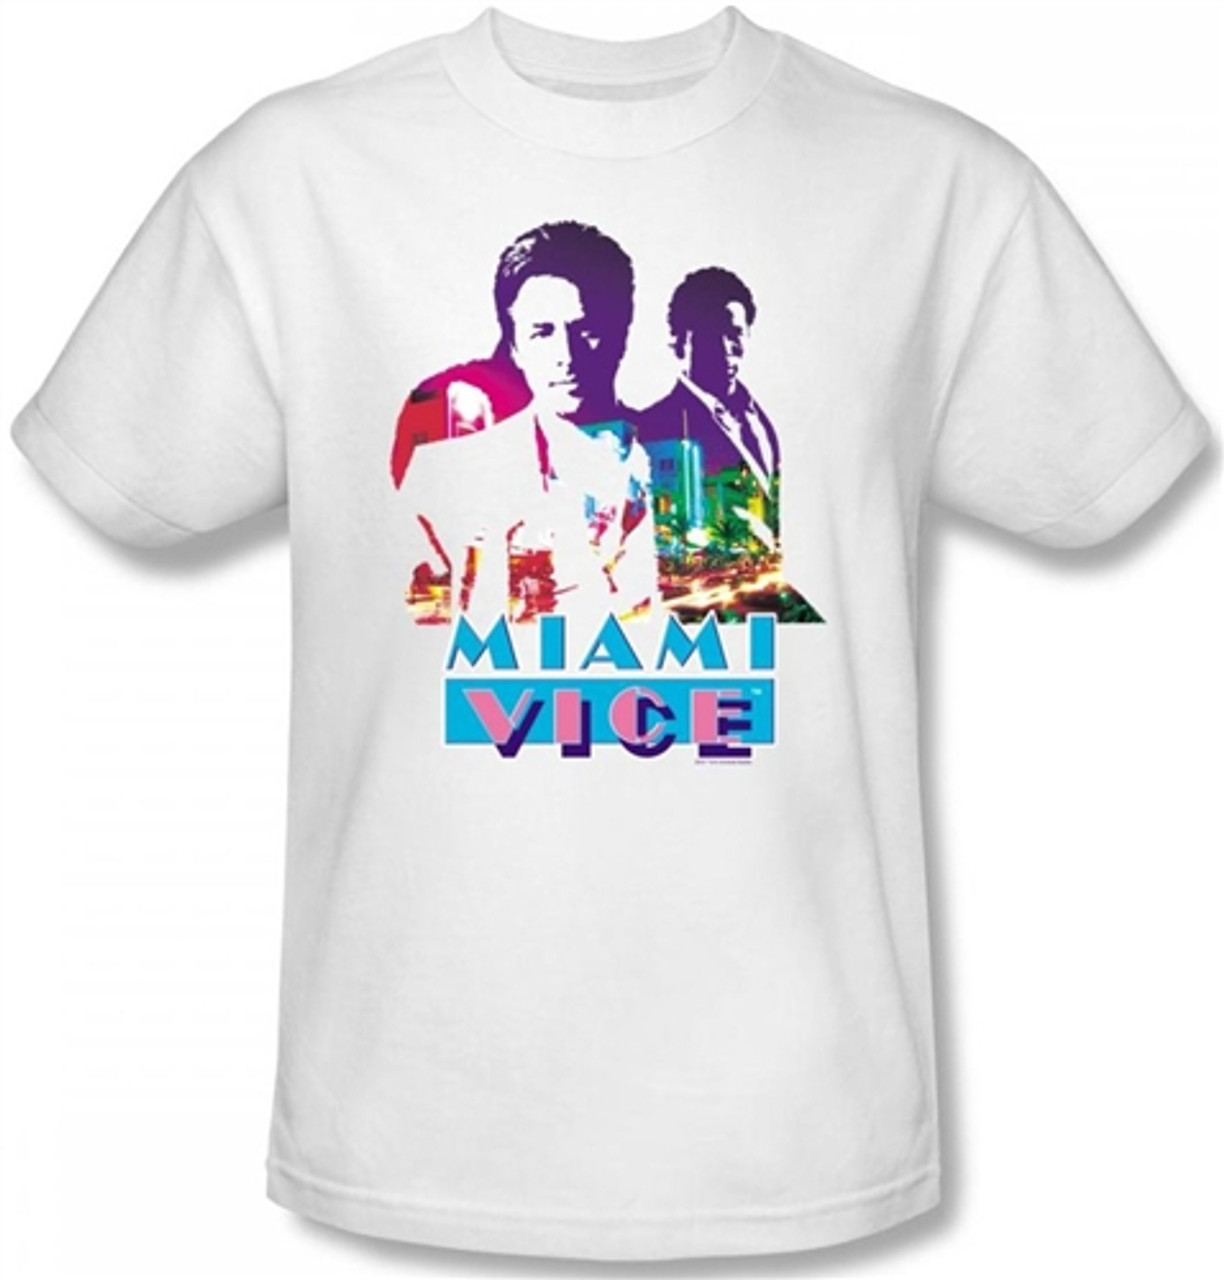 Freeze Women T-Shirt S-XXL Sizes Officially Licensed Miami Vice